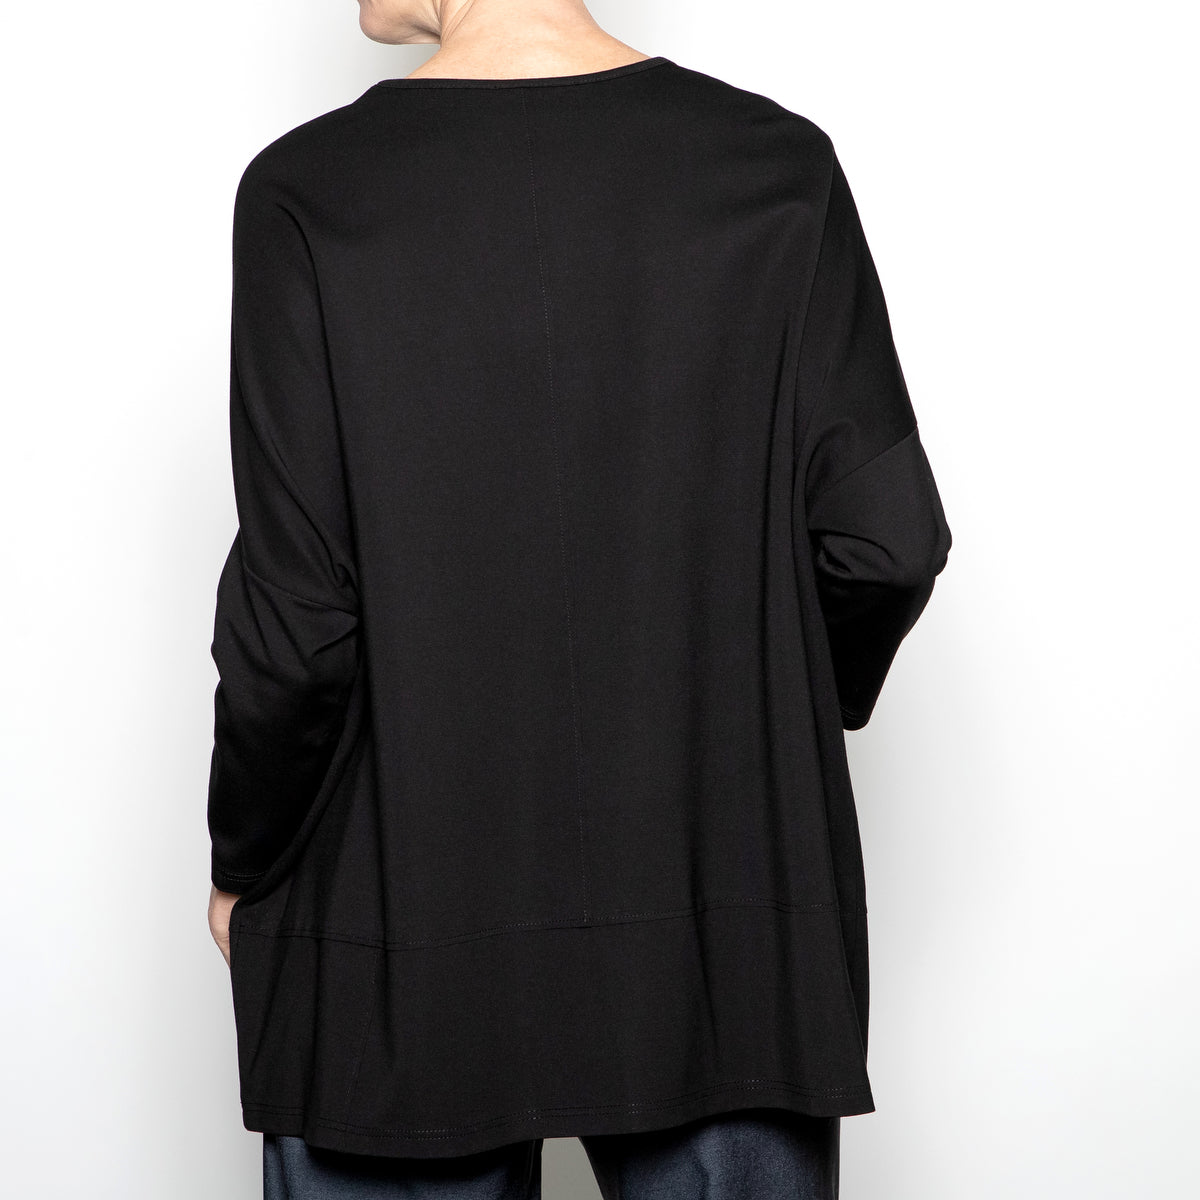 Q'Neel Pocket Top